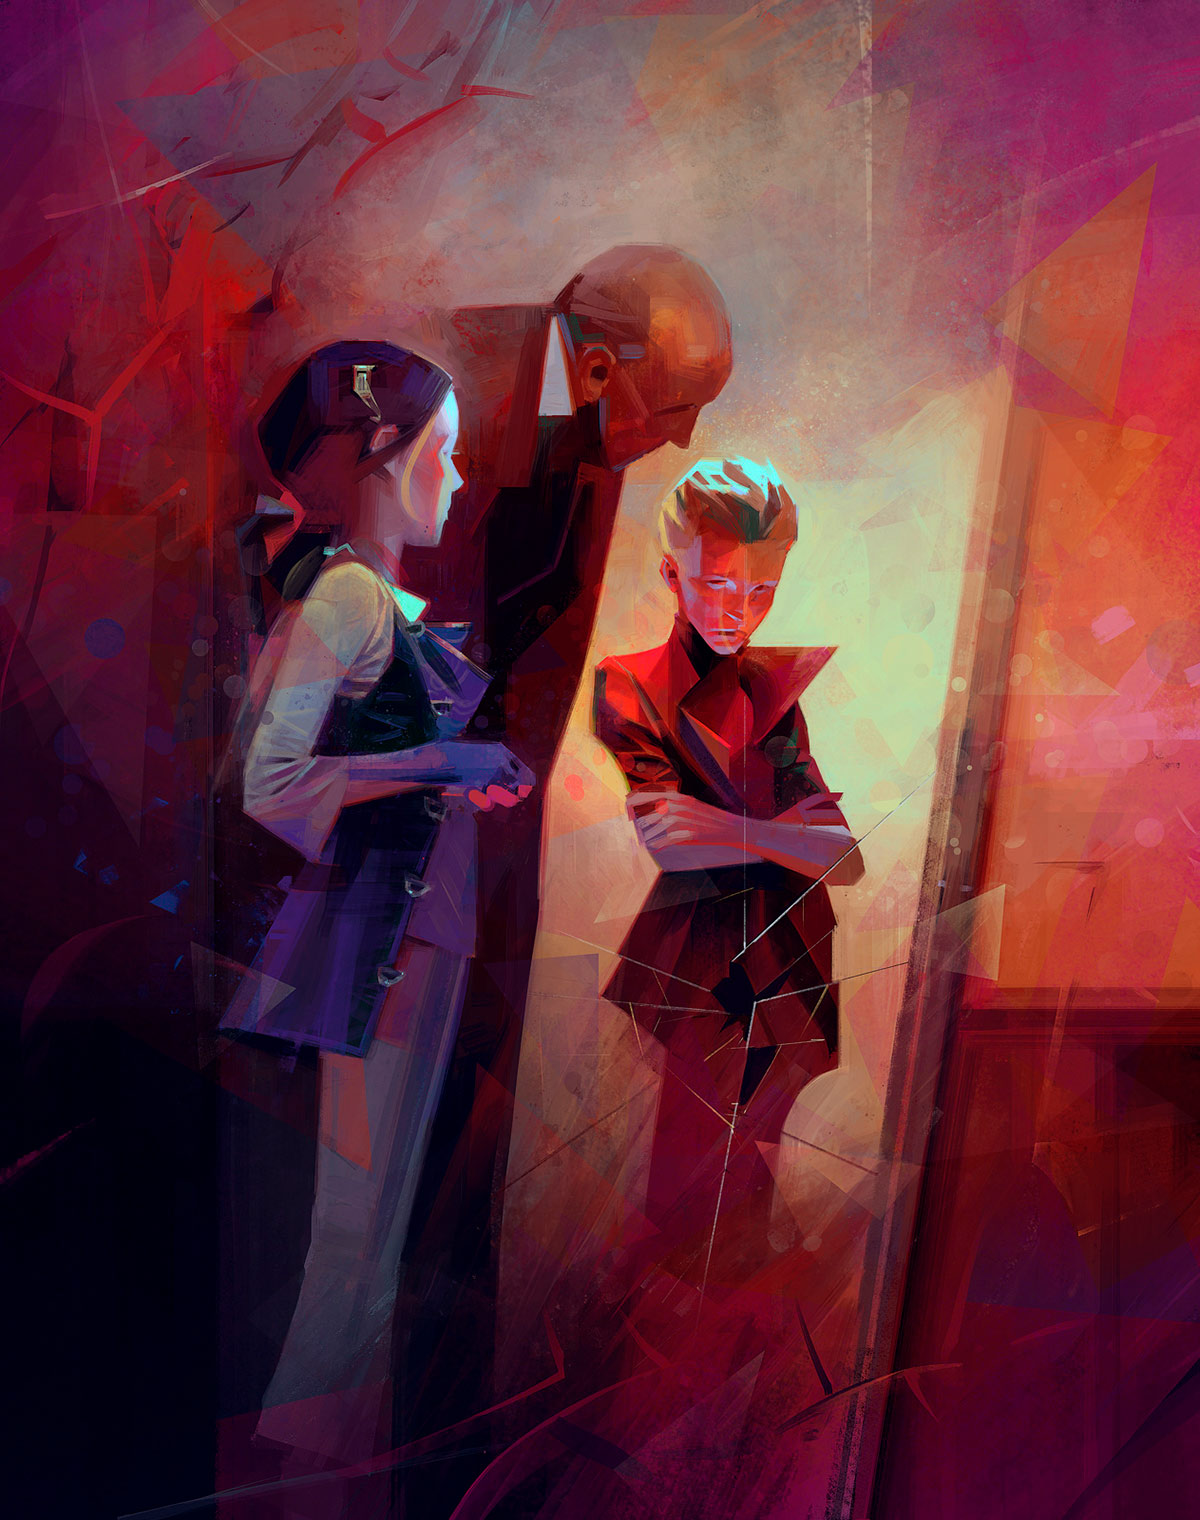 Digital-Art-Amazing-Illustrations-by-Sergey-Kolesov-2